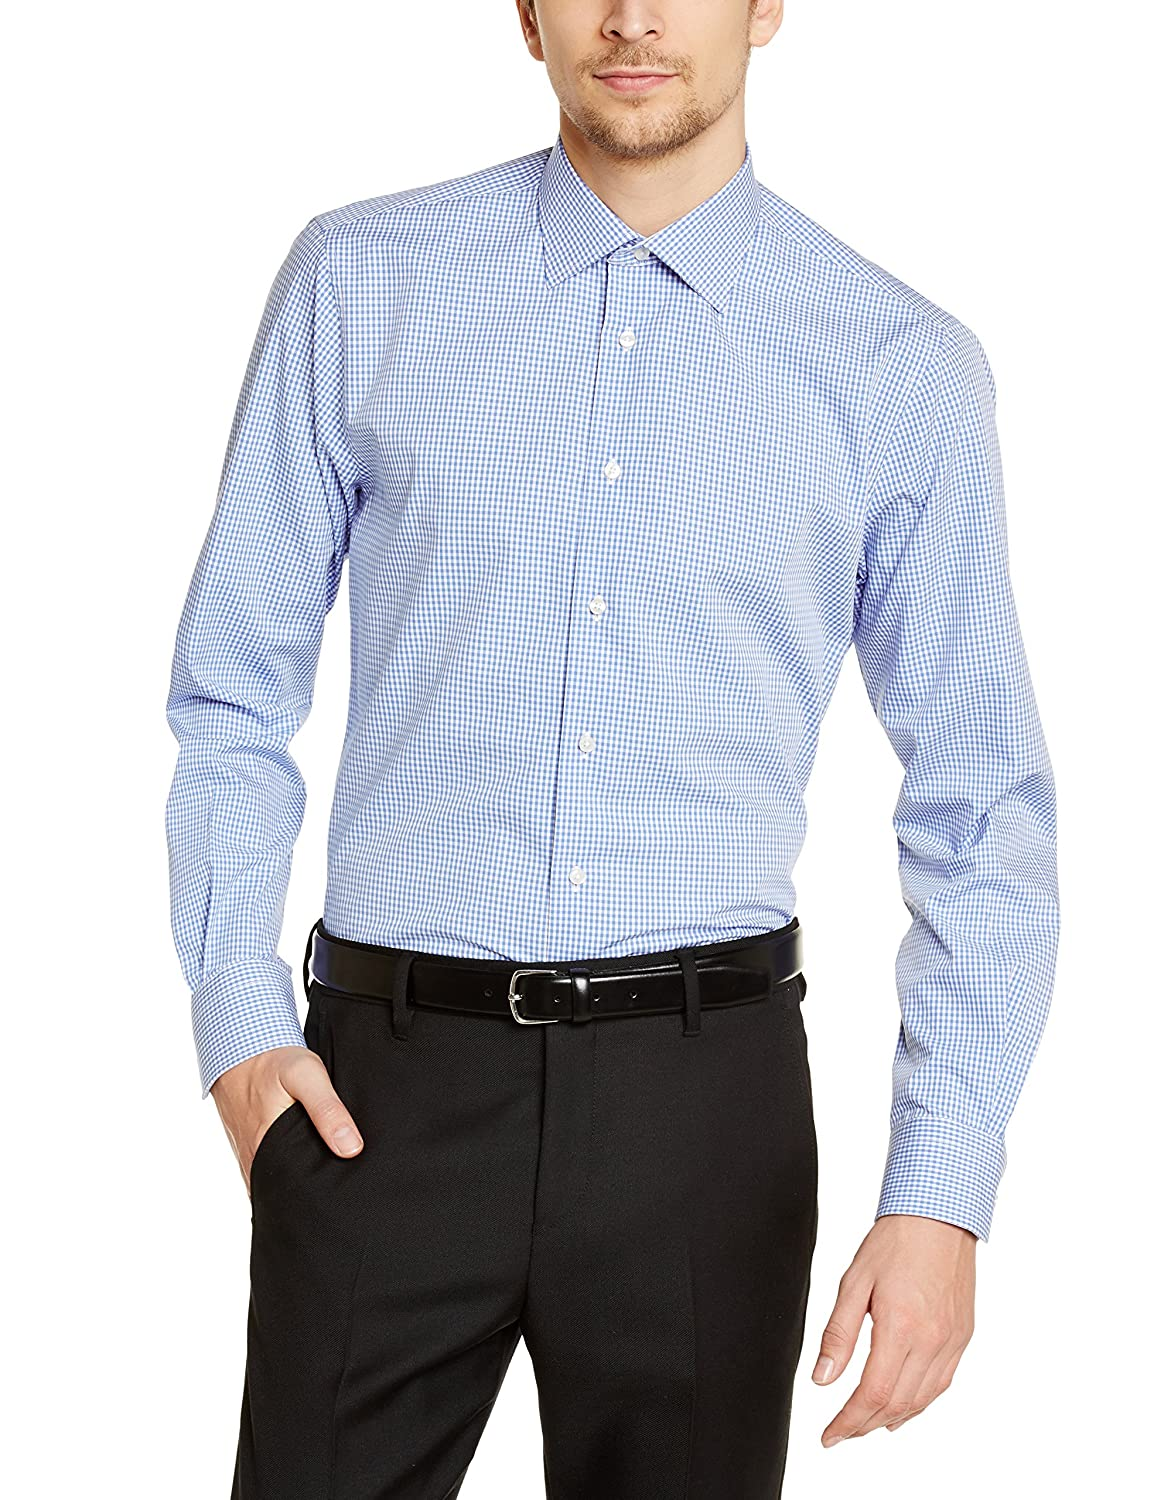 Tommy Hilfiger Tailored Herren Regular Fit Smoking Hemd JHN SHTCHK99002:  Amazon.de: Bekleidung